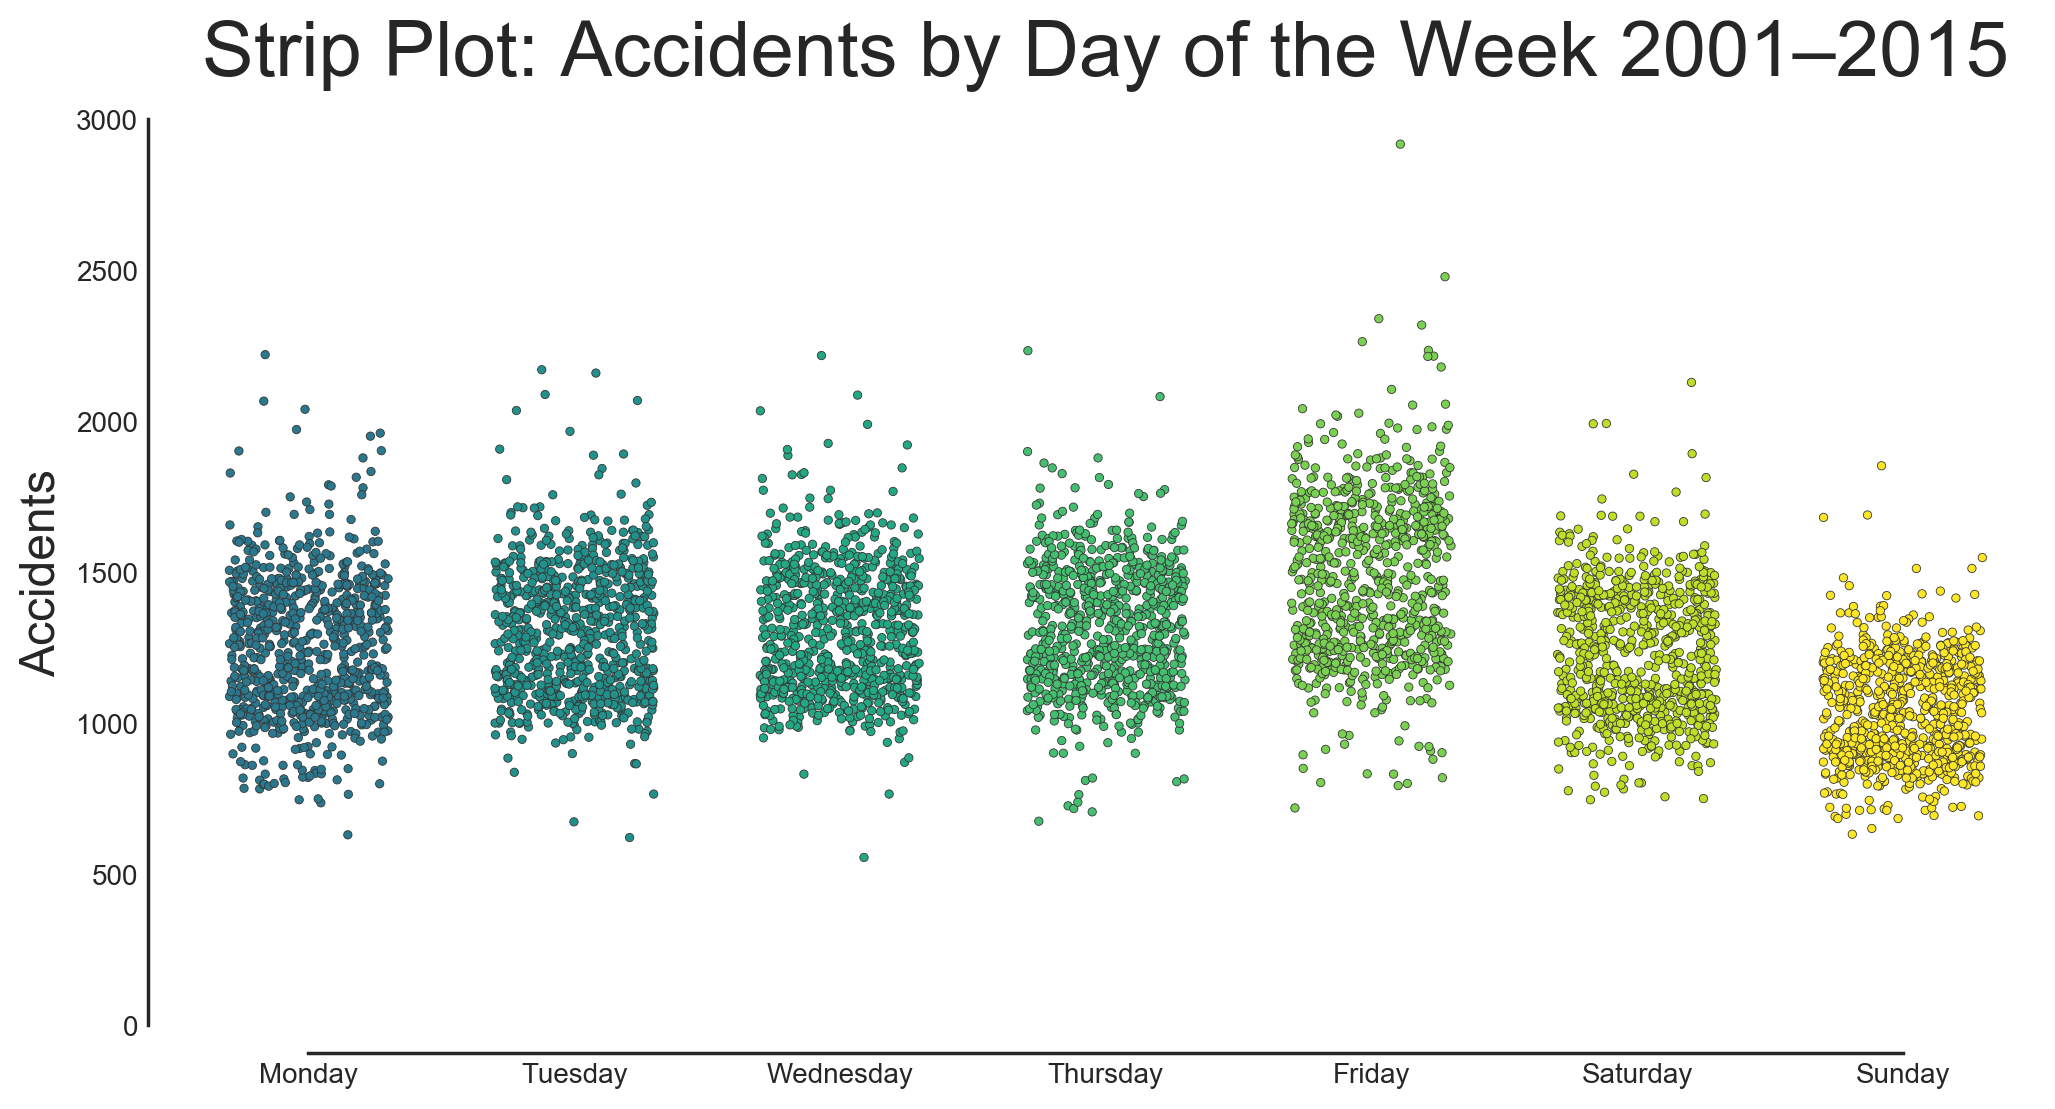 A strip plot showing the distribution of accidents per day in California from 2001–2015 by day of the week.